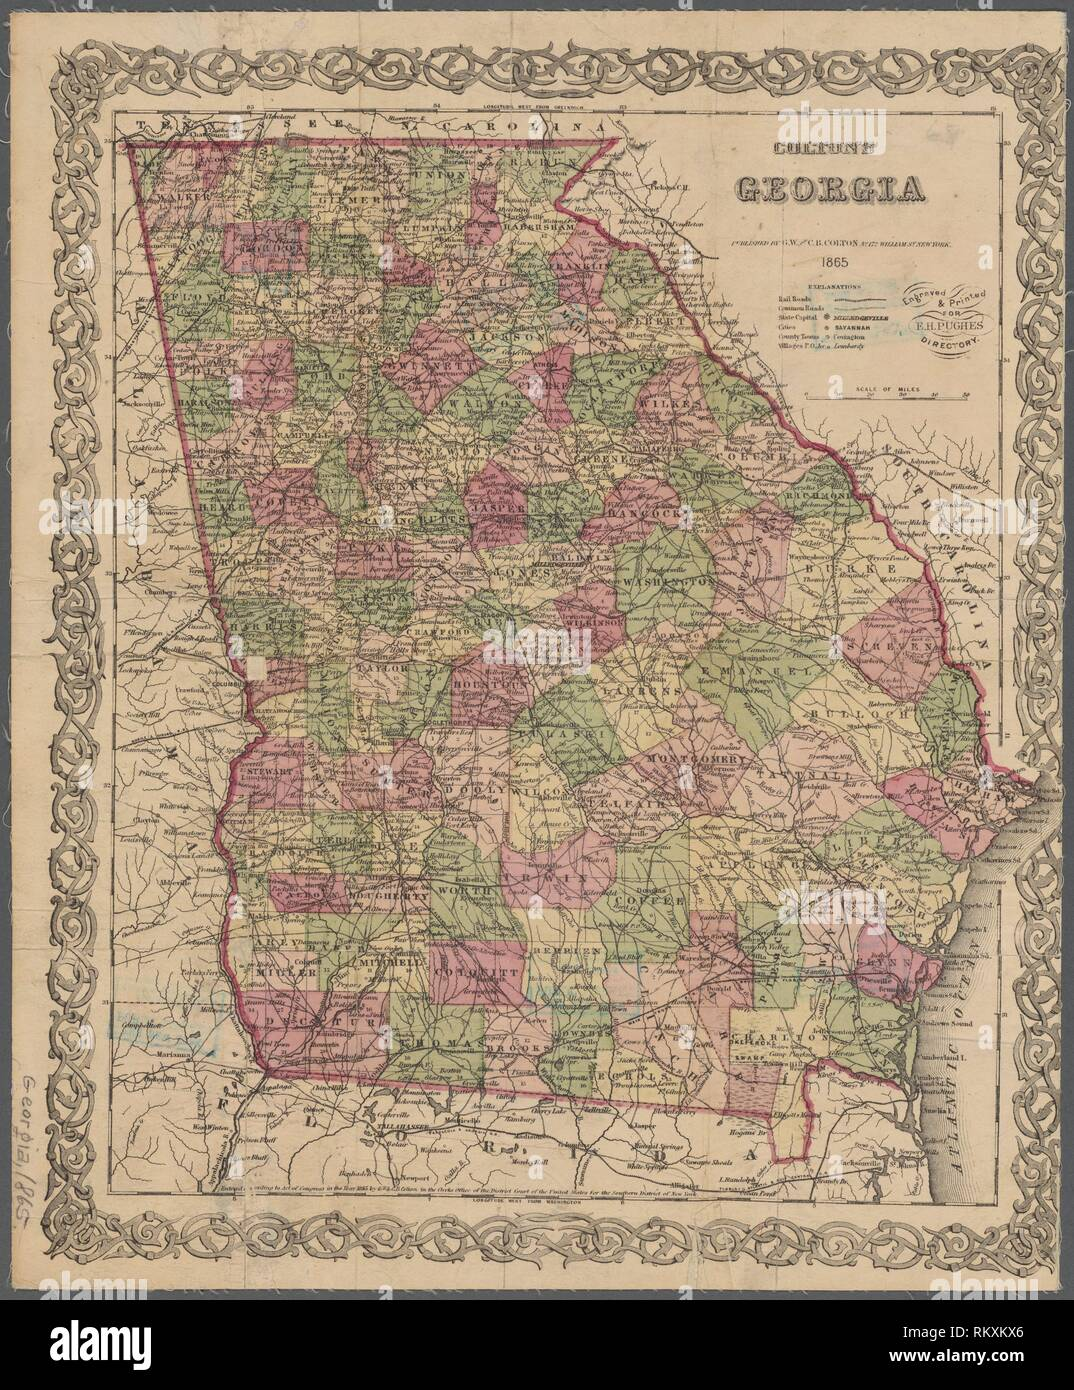 Map Of Georgia 1865.Colton S Georgia G W C B Colton Co Publisher Pughe E H